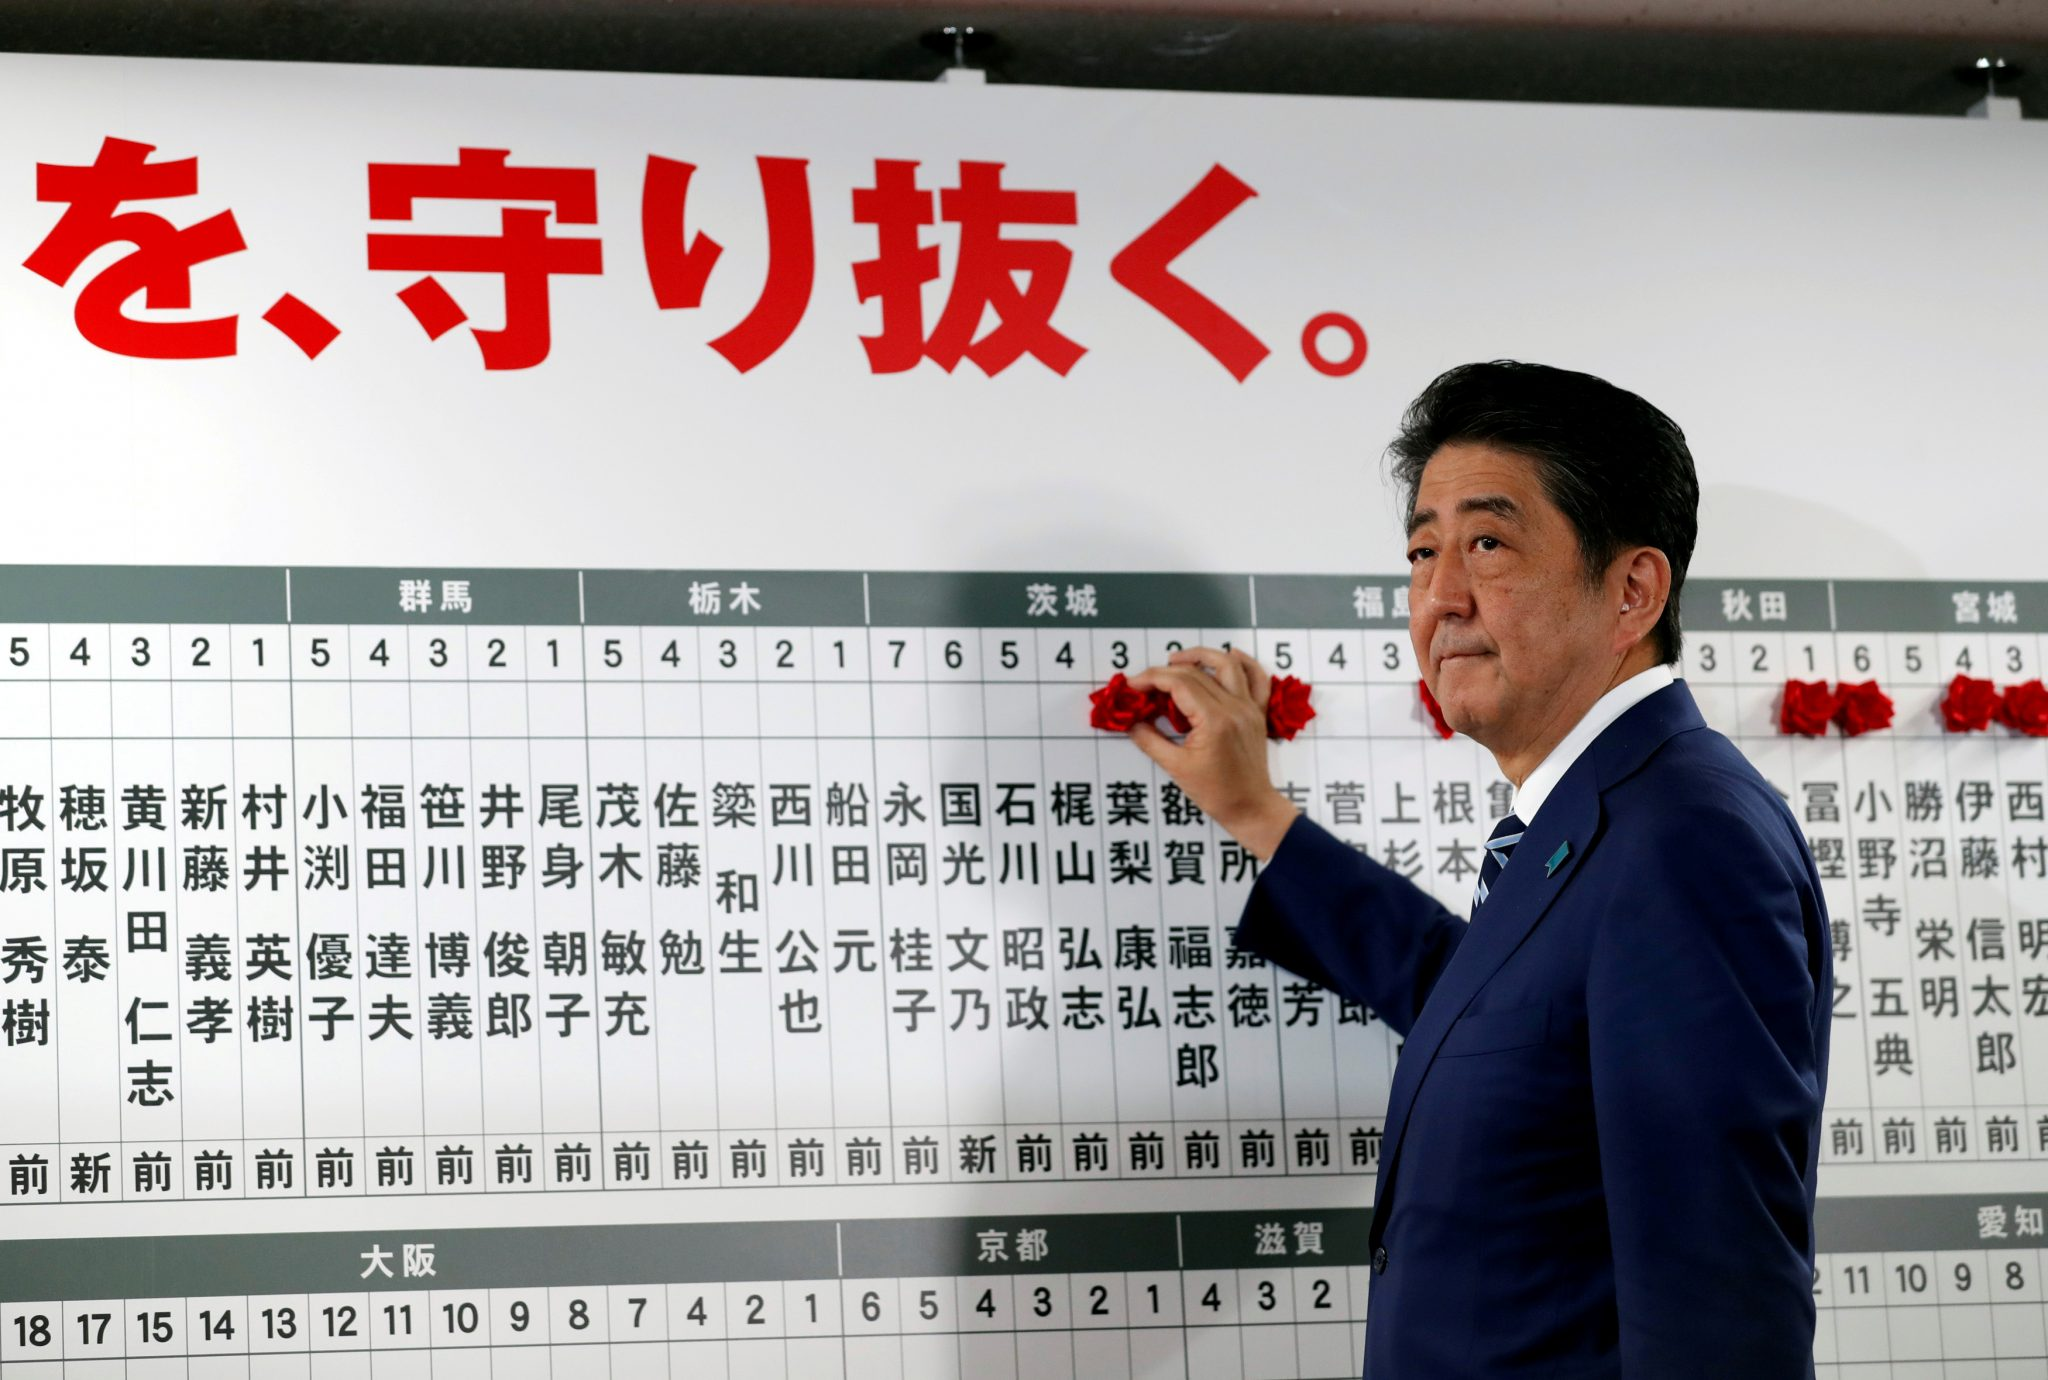 Japanese Election: Japan's PM and LDP leader Abe looks on as he puts a rosette on the name of a candidate who is expected to win the lower house election at the LDP headquarters in Tokyo | REUTERS